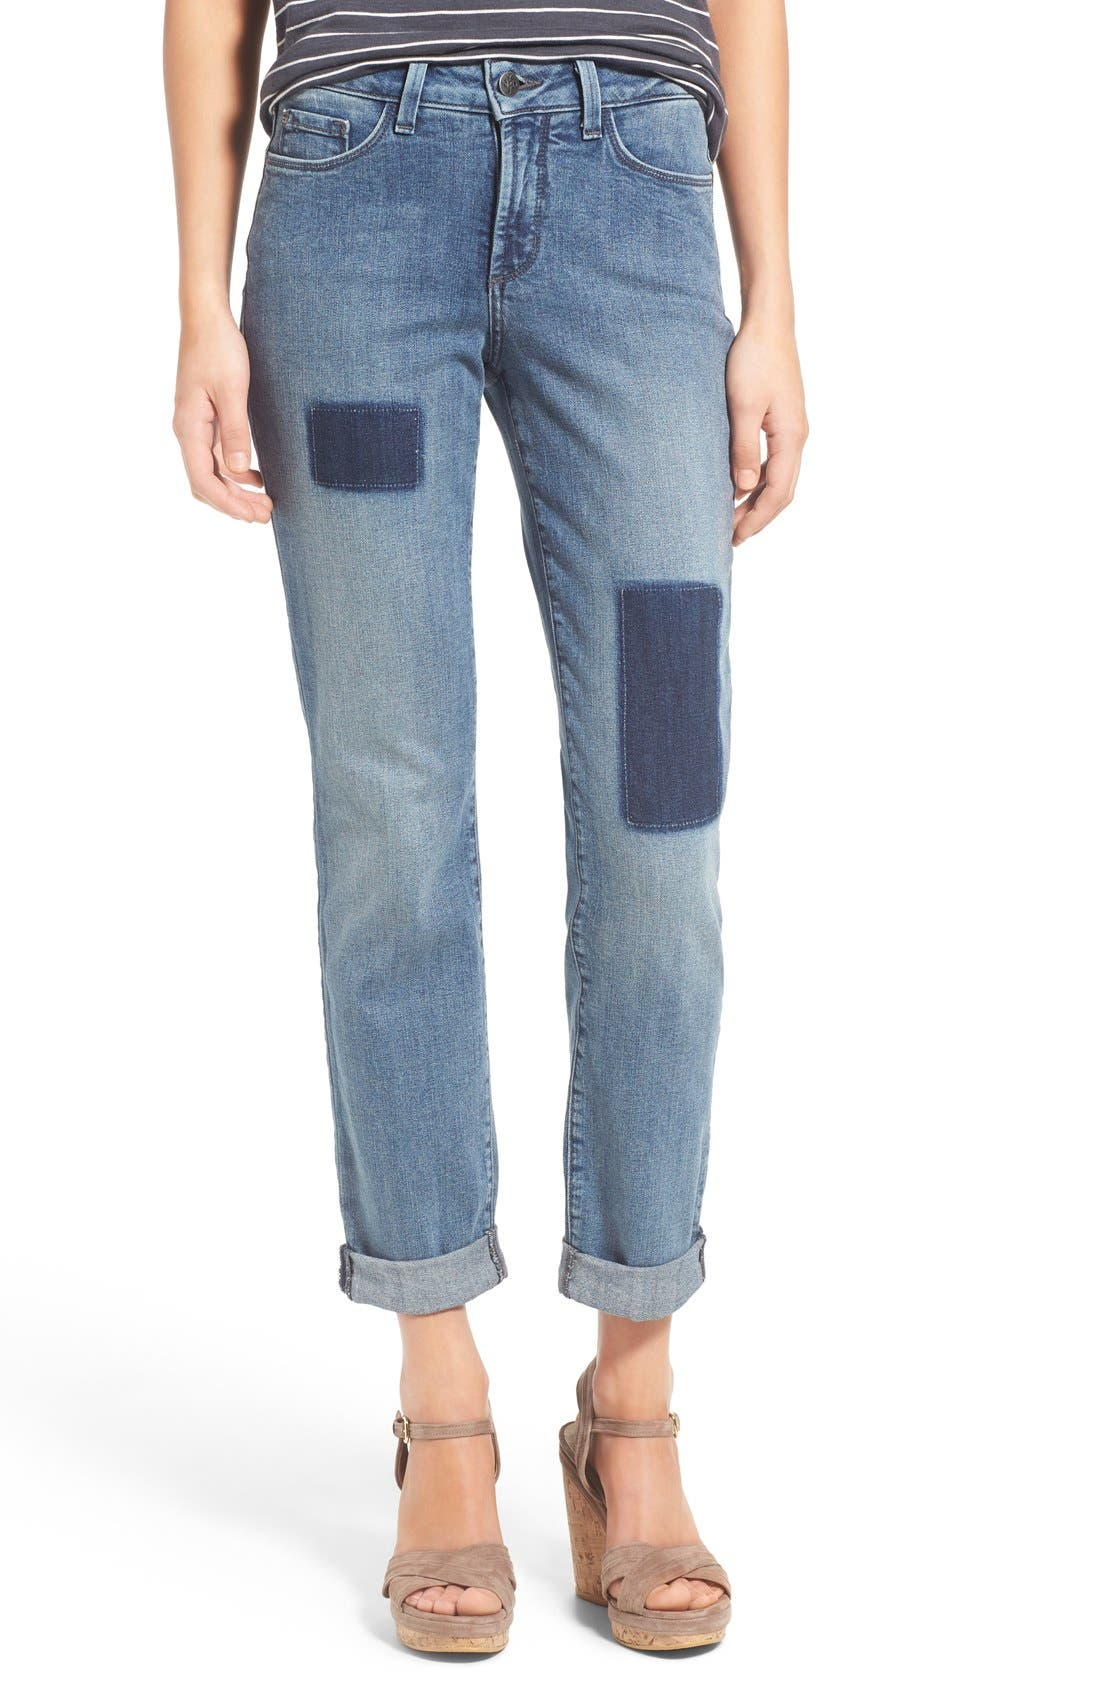 Alternate Image 1 Selected - NYDJ 'Sylvia' Patch Detail Stretch Relaxed Boyfriend Jeans (Montebello)